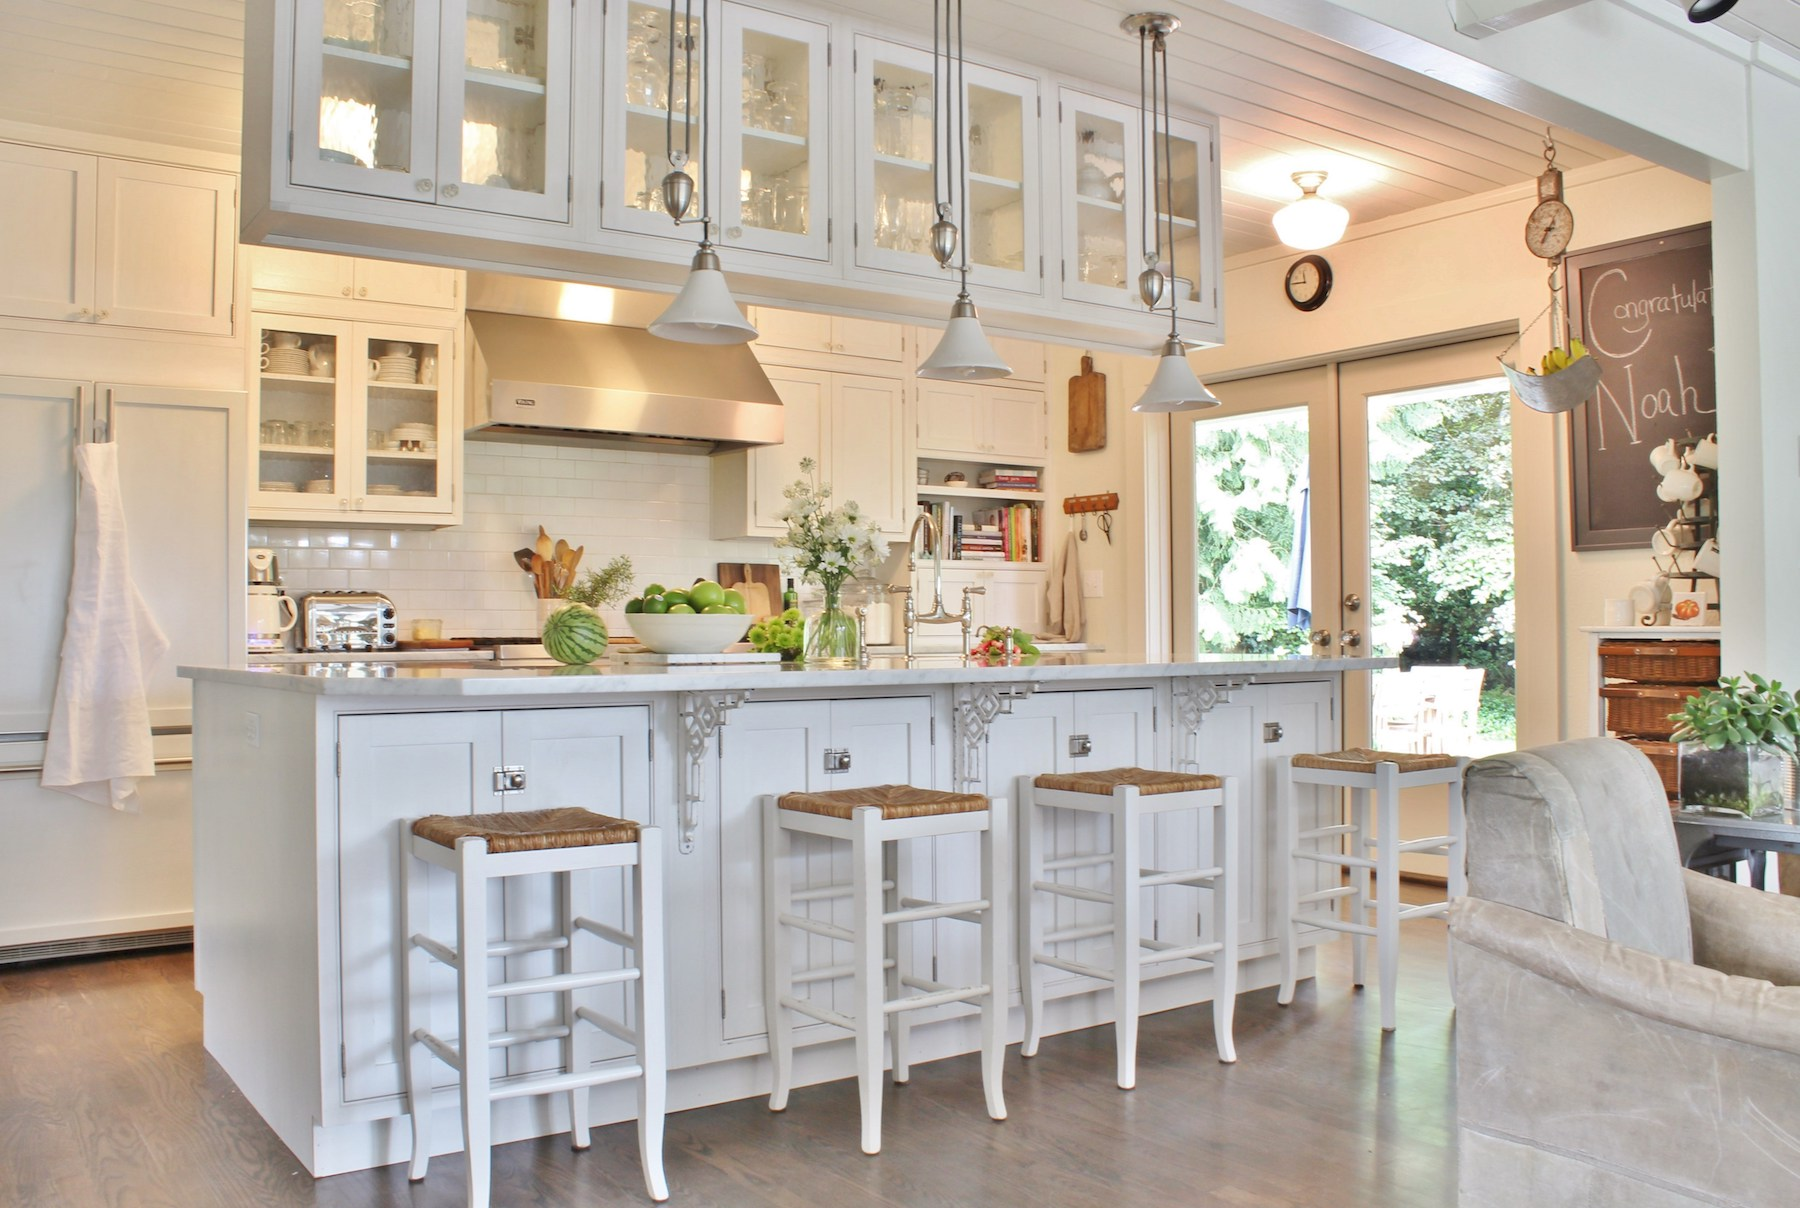 Hardwood Flooring Is No Longer the Top Choice for Kitchens ...